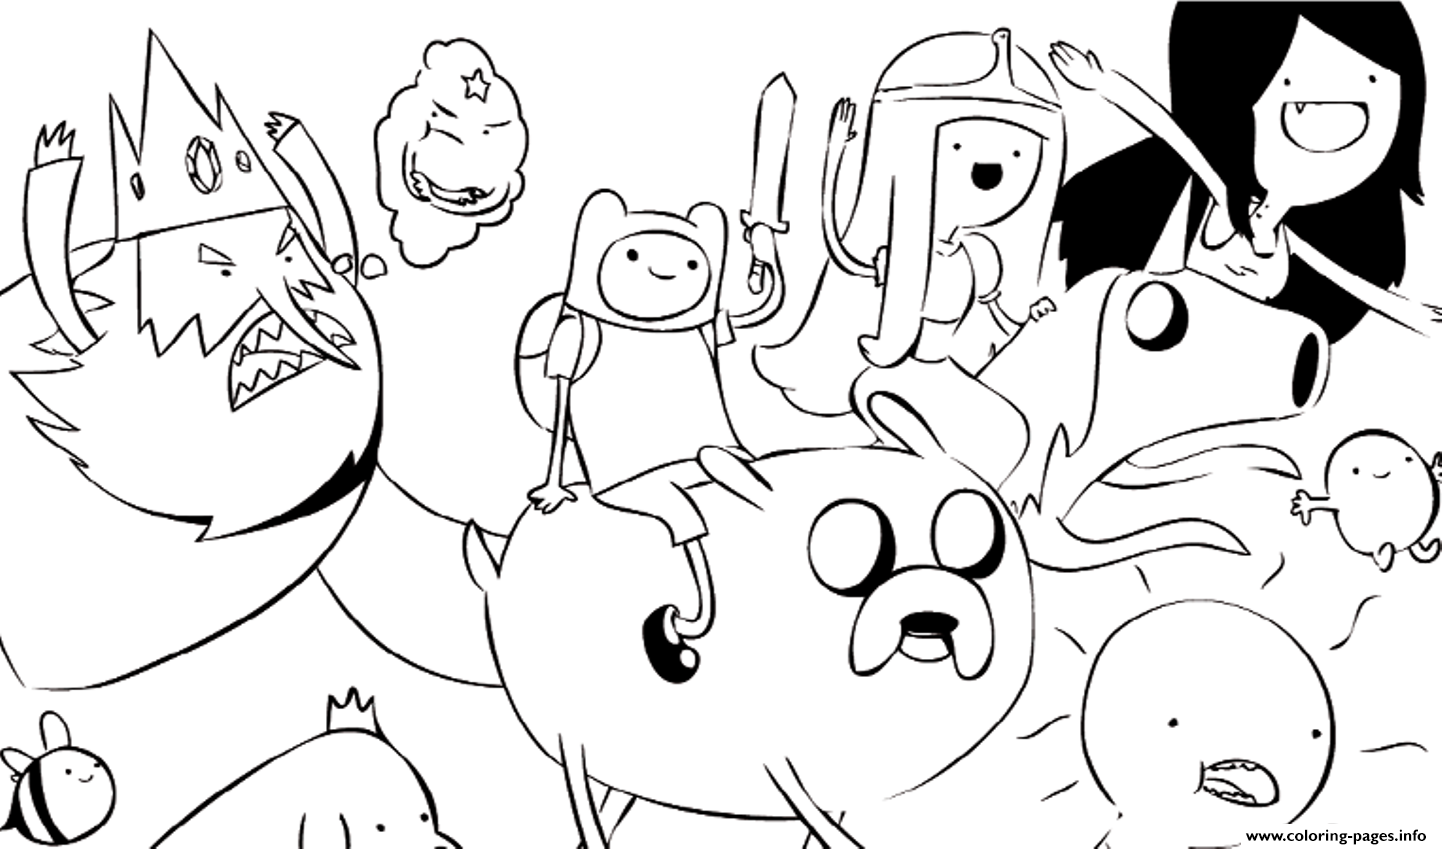 Adventure Time S Cartoone863 Coloring Pages Printable